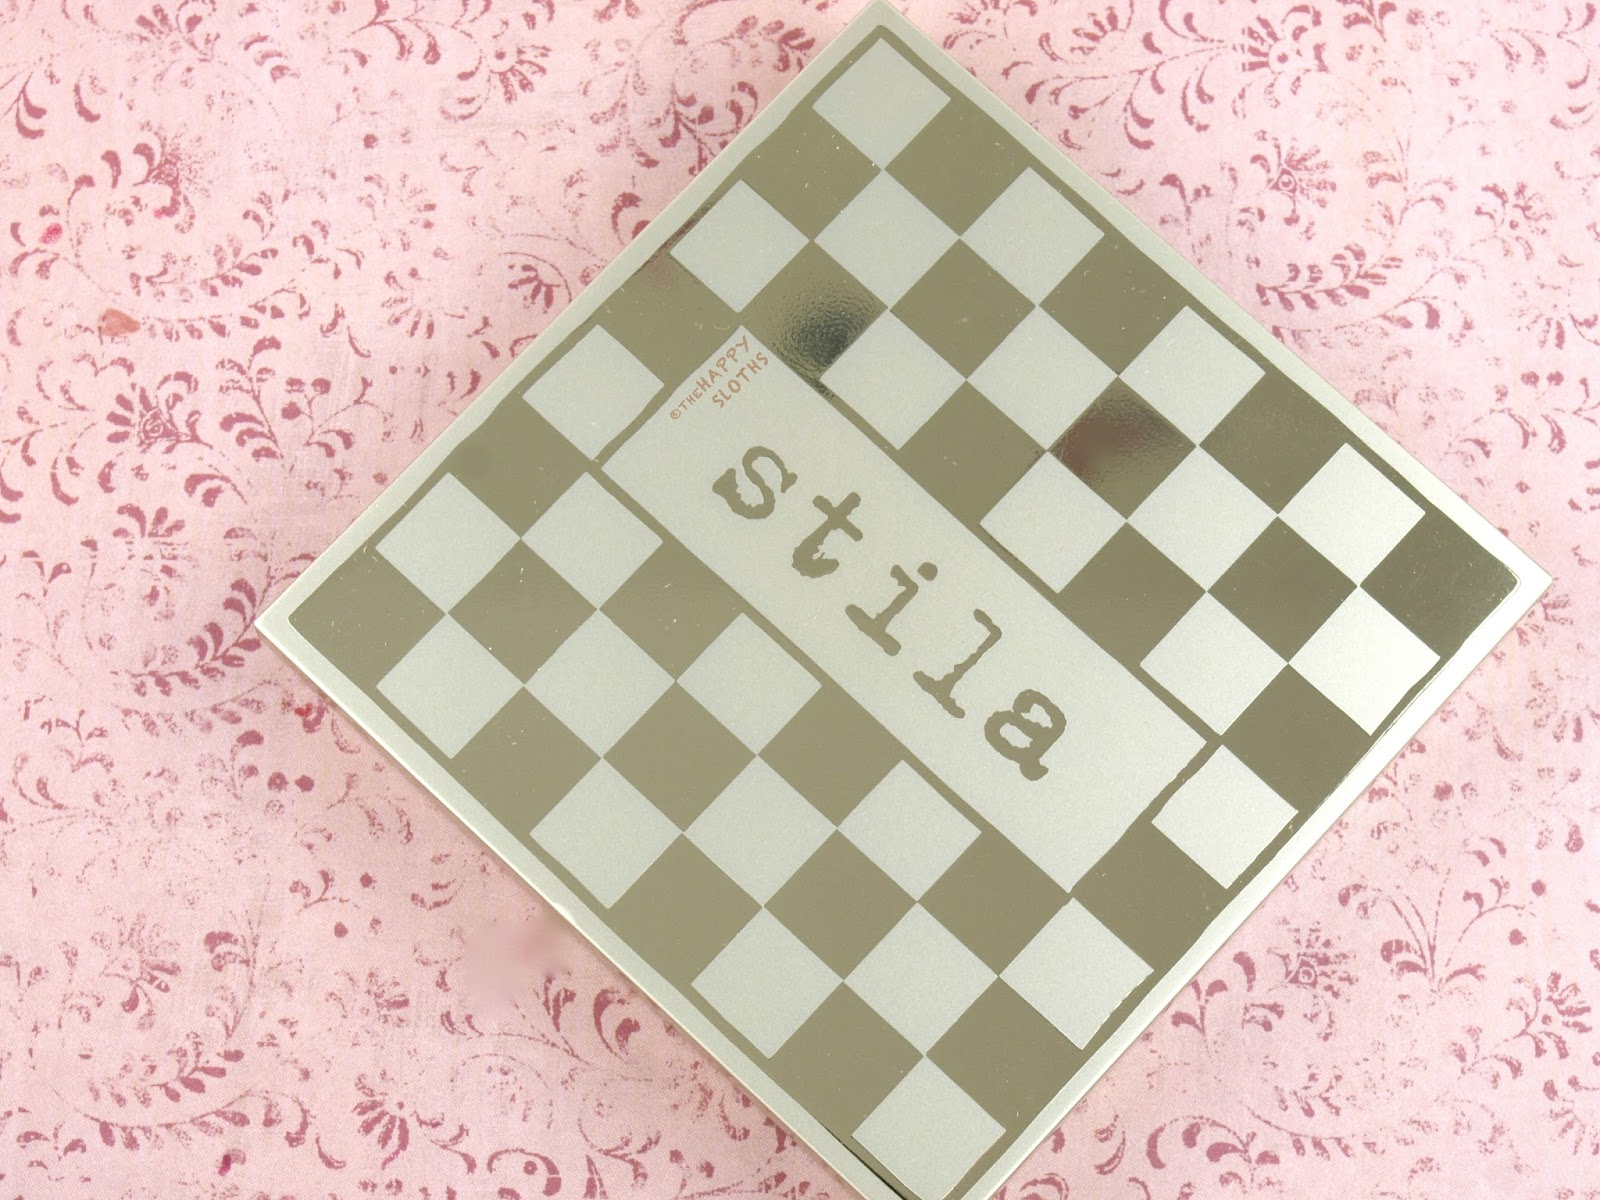 Stila Matte 'n Metal Eyeshadow Palette: Review and Swatches